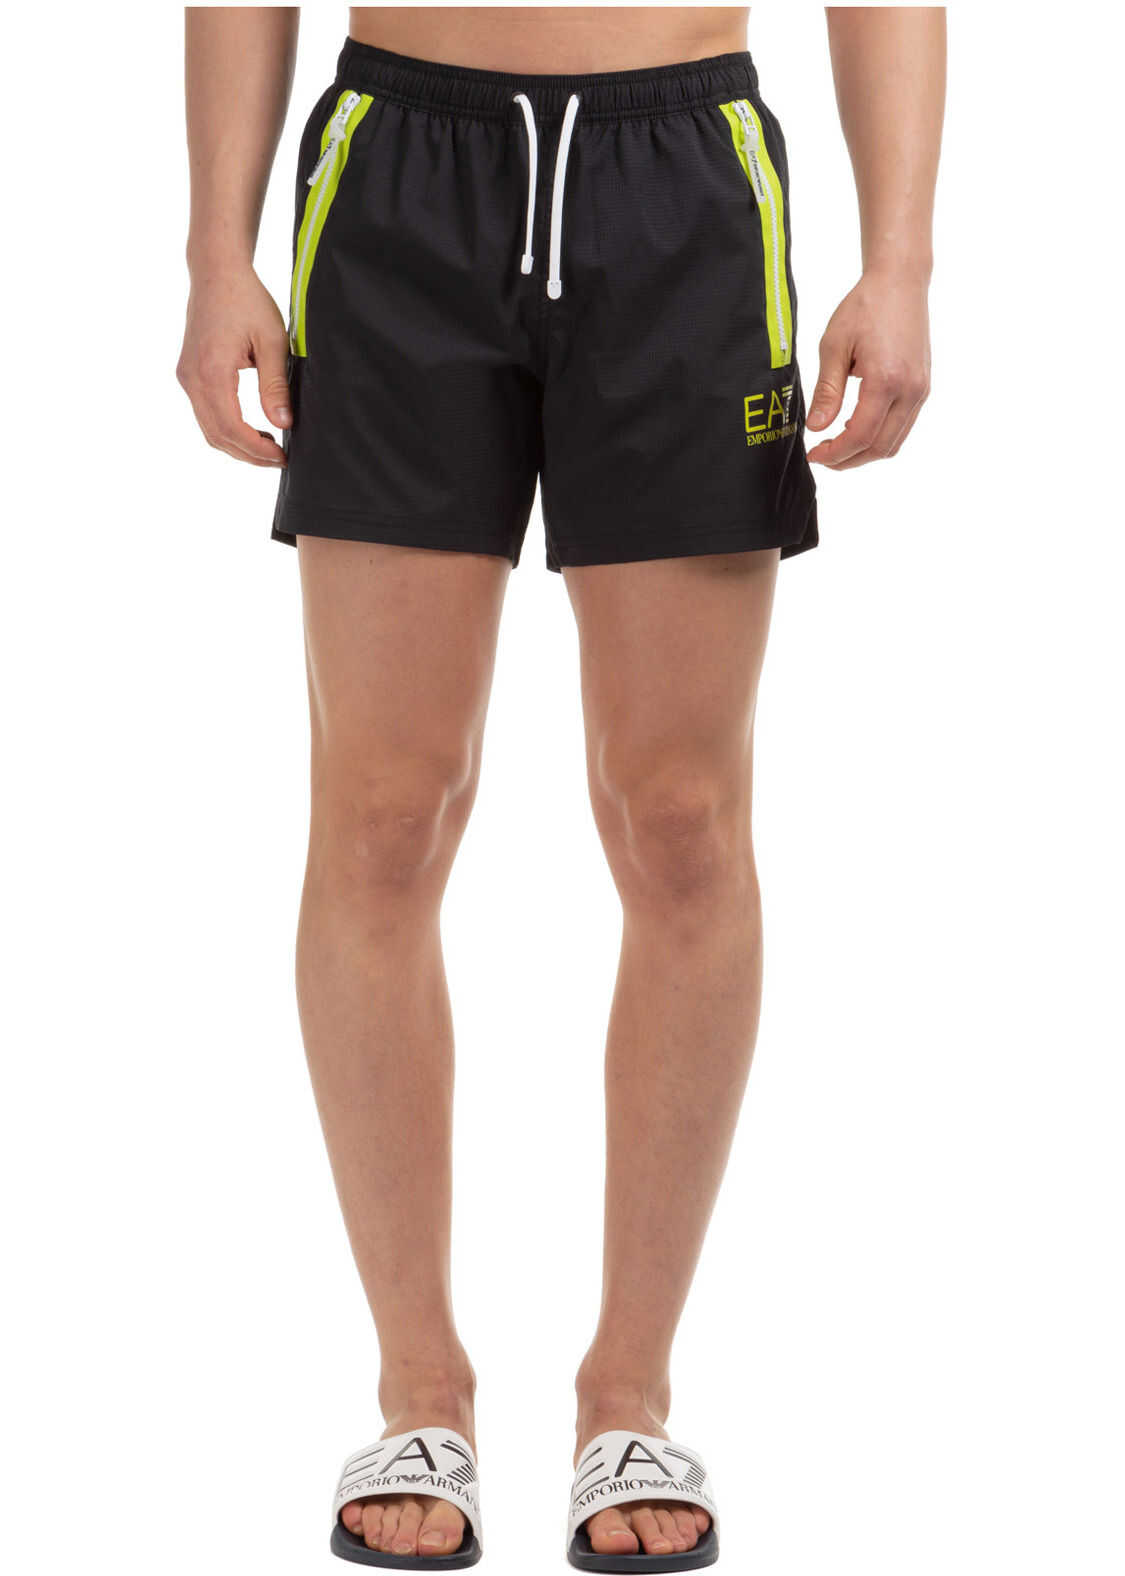 EA7 Swimming Suit Black